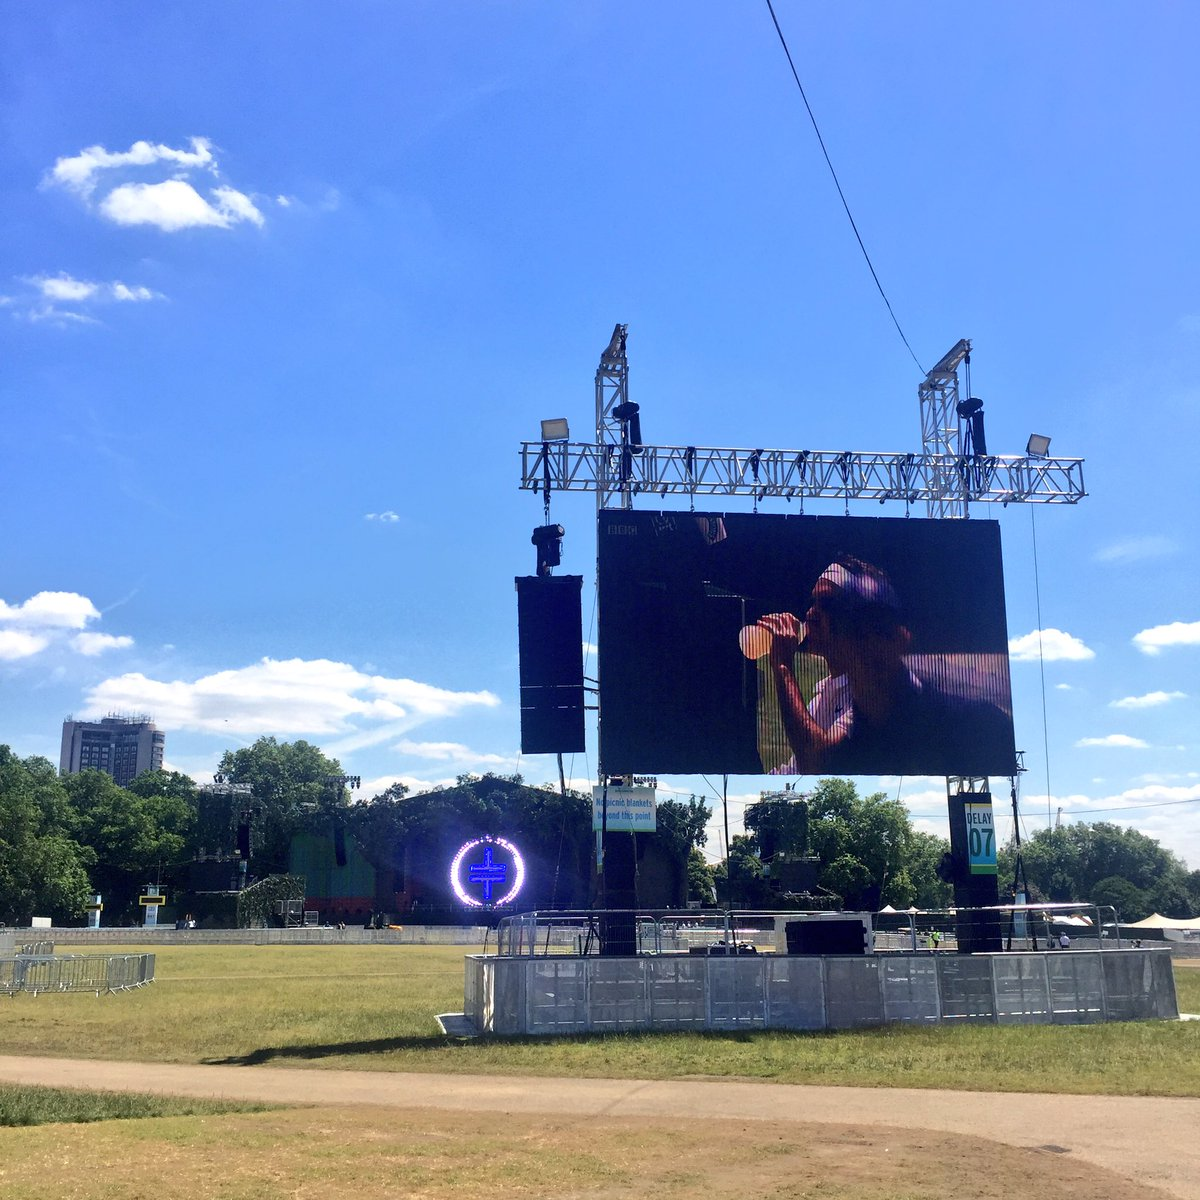 It's a beautiful day @BSTHydePark and we've got beautiful food on site for you! @Wimbledon is on the big screen too! https://t.co/fpEeltmYDZ